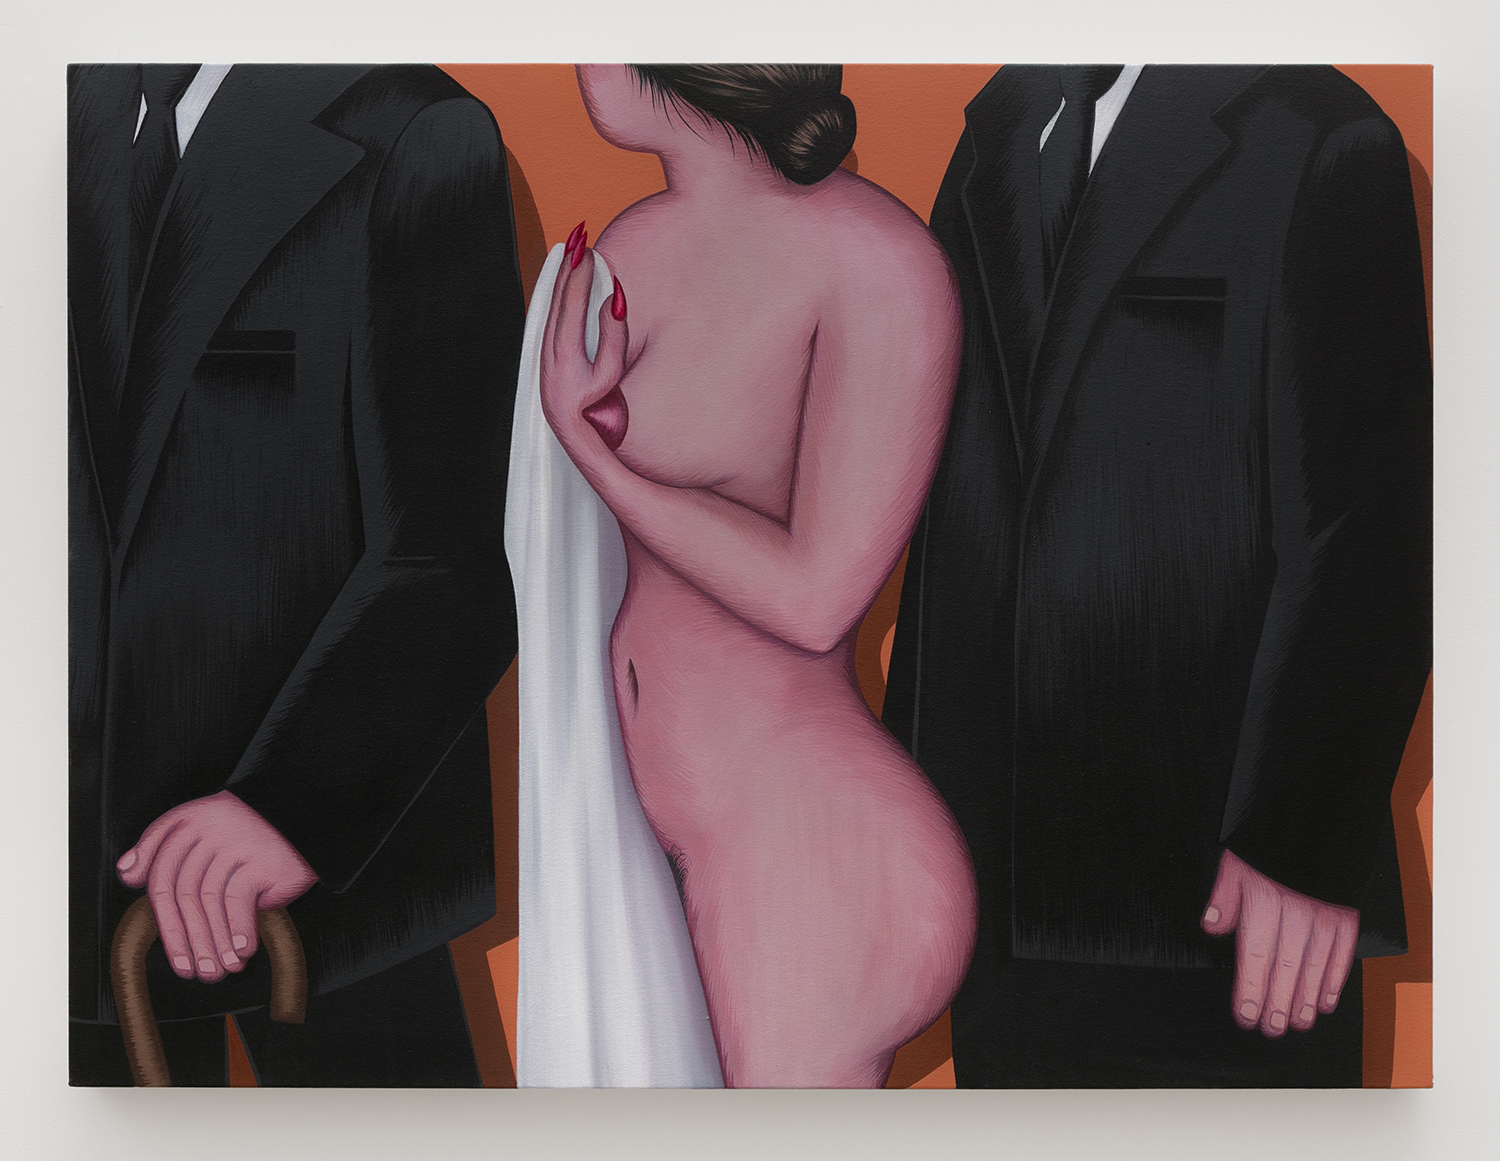 Funeral   Acrylic and oil on canvas  30 inches x 40 inches  2017